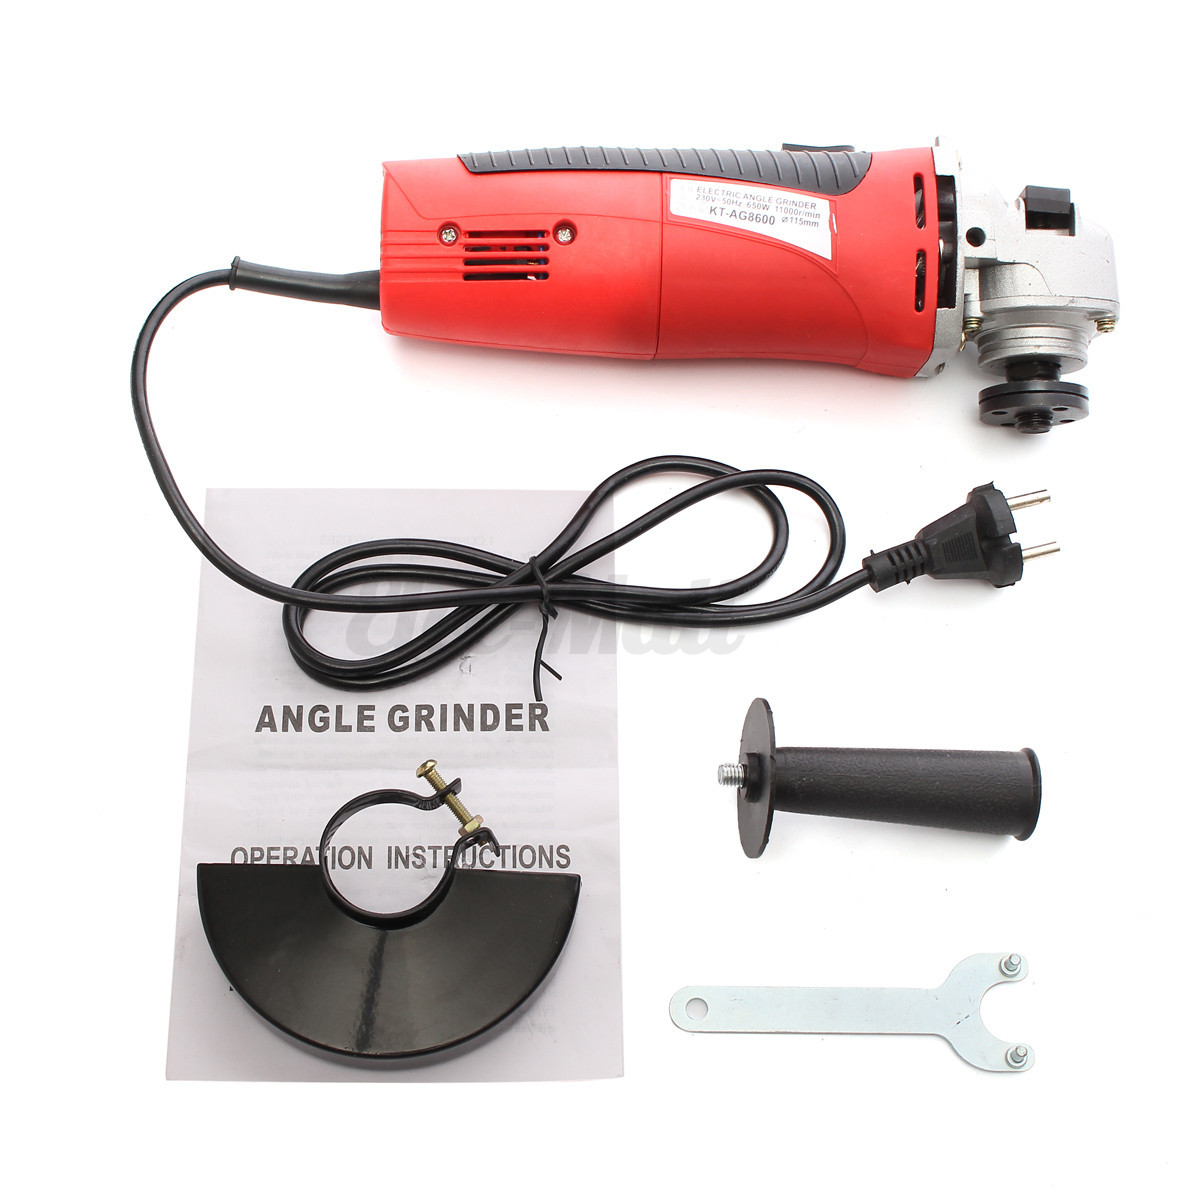 Hand Grinders For Metal ~ Rpm angle grinder  electric metal